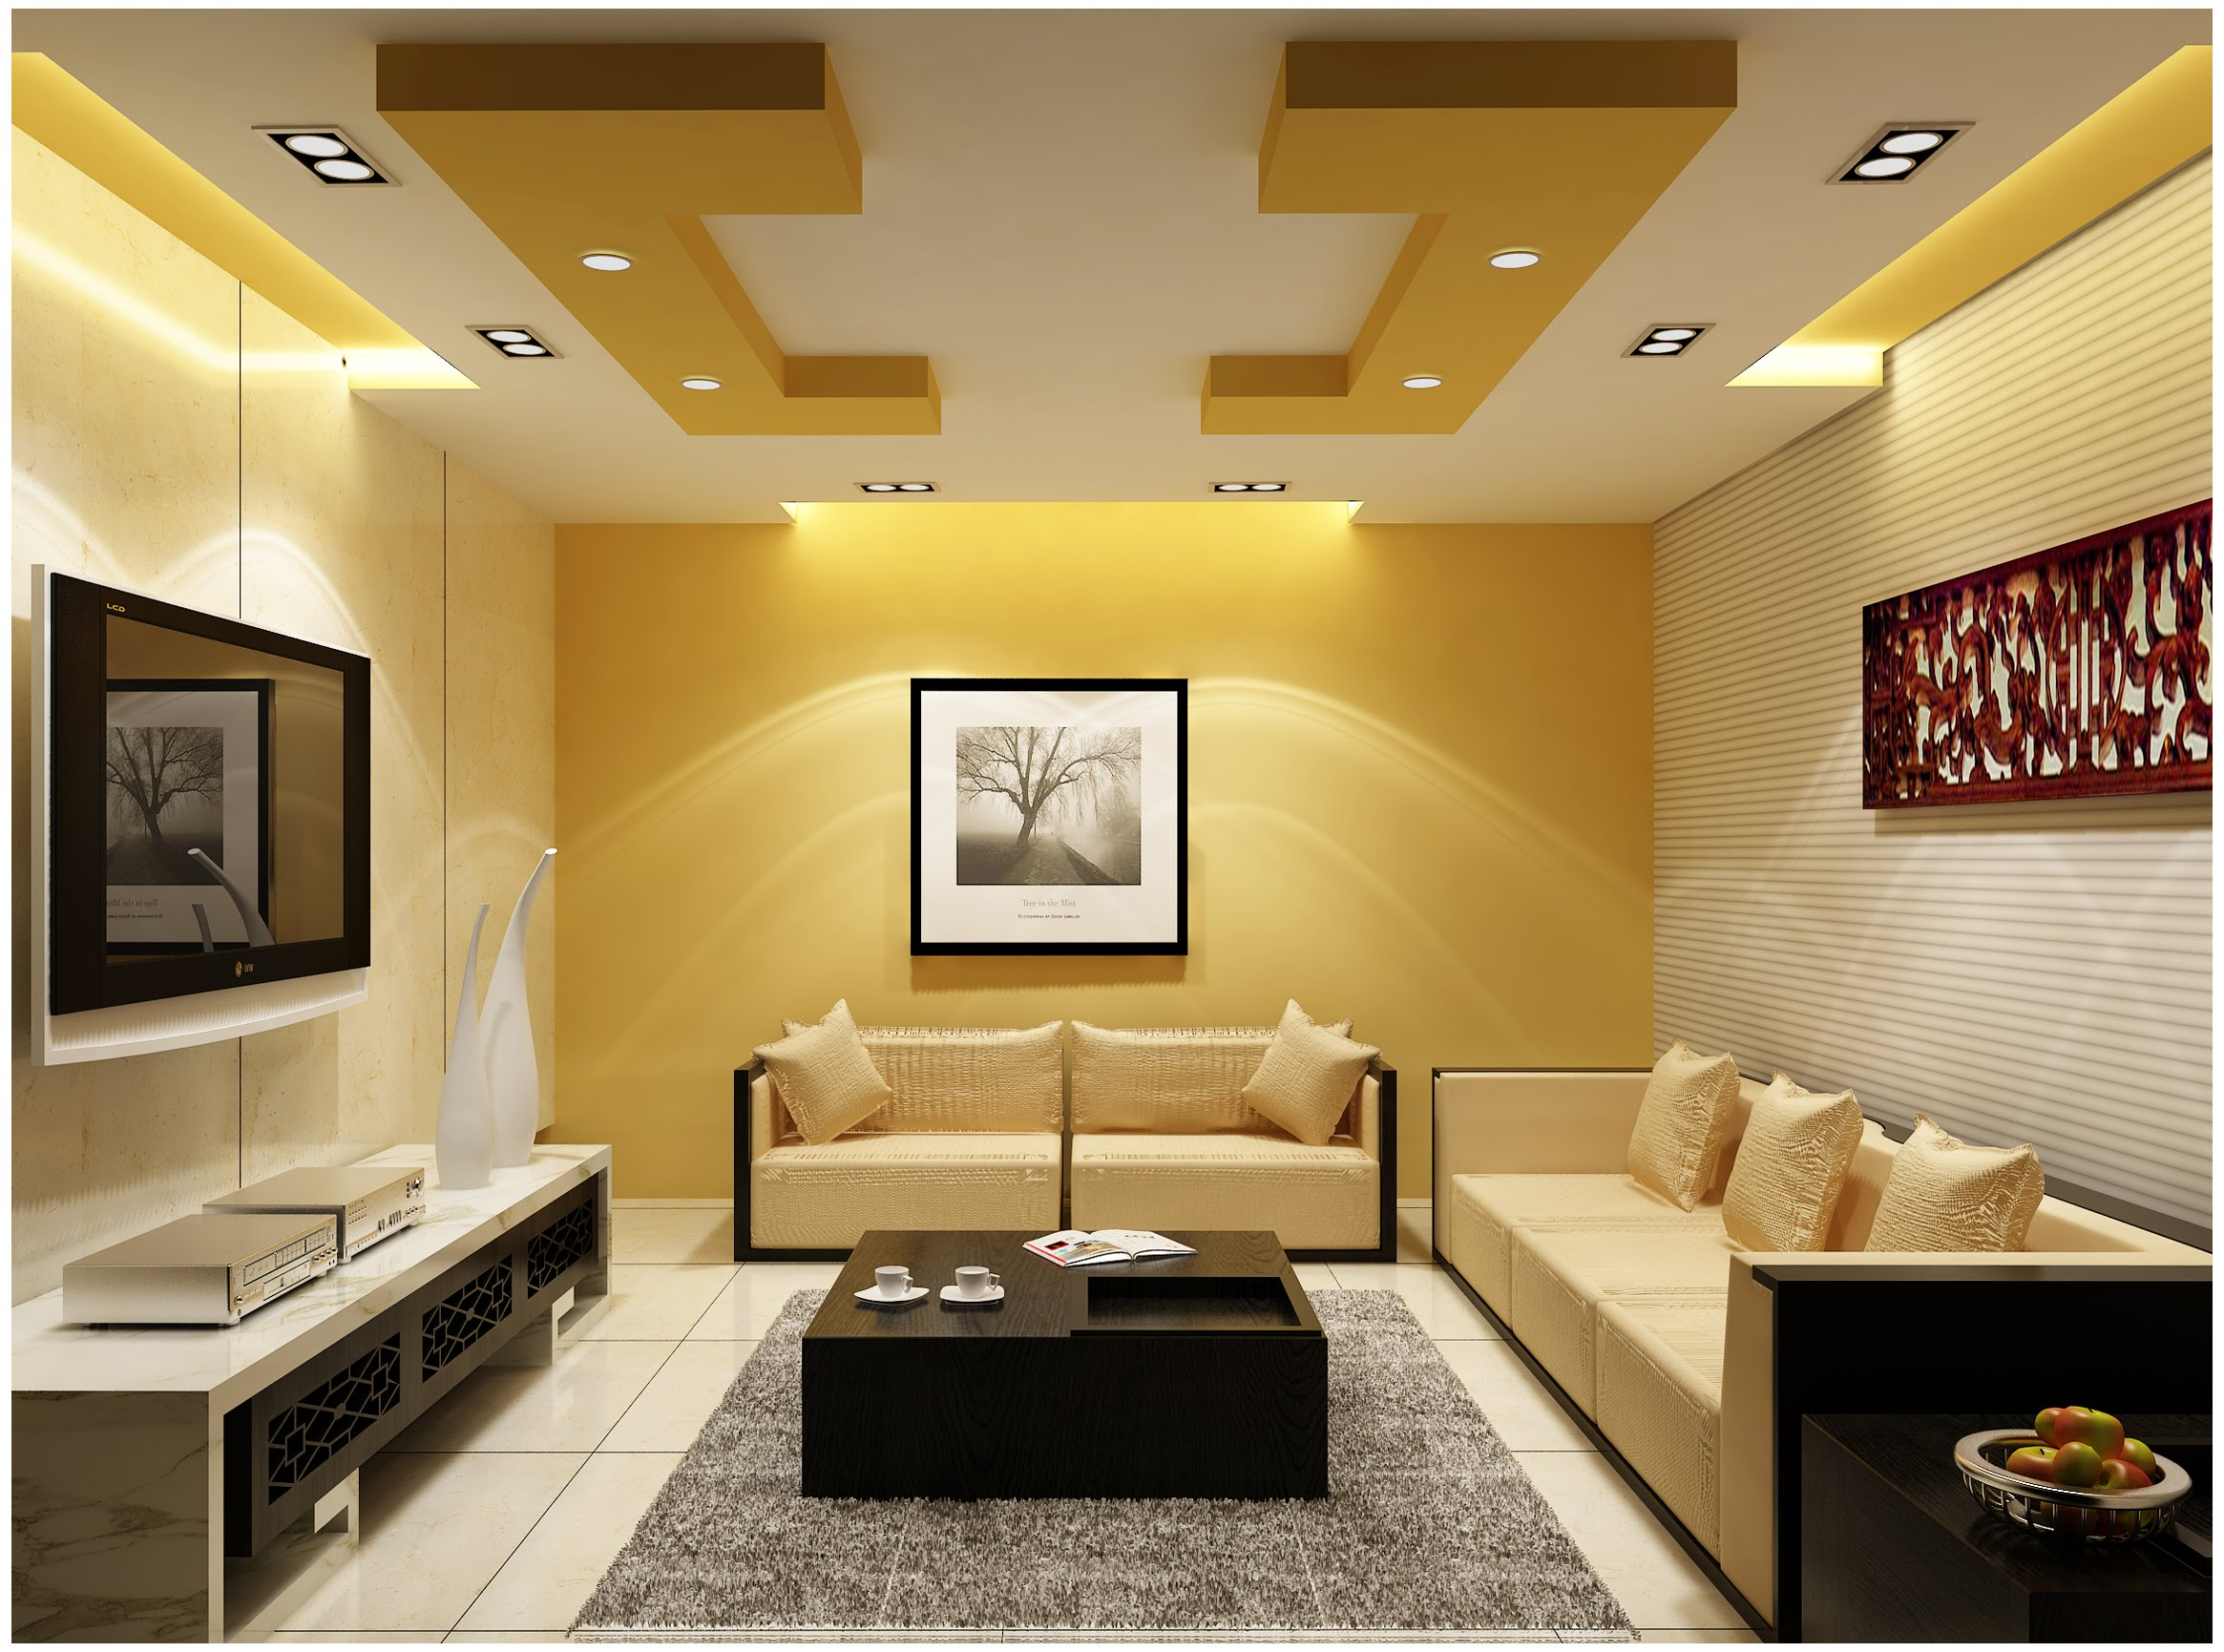 25 Latest False Designs For Living Room Amp Bed Room Youme